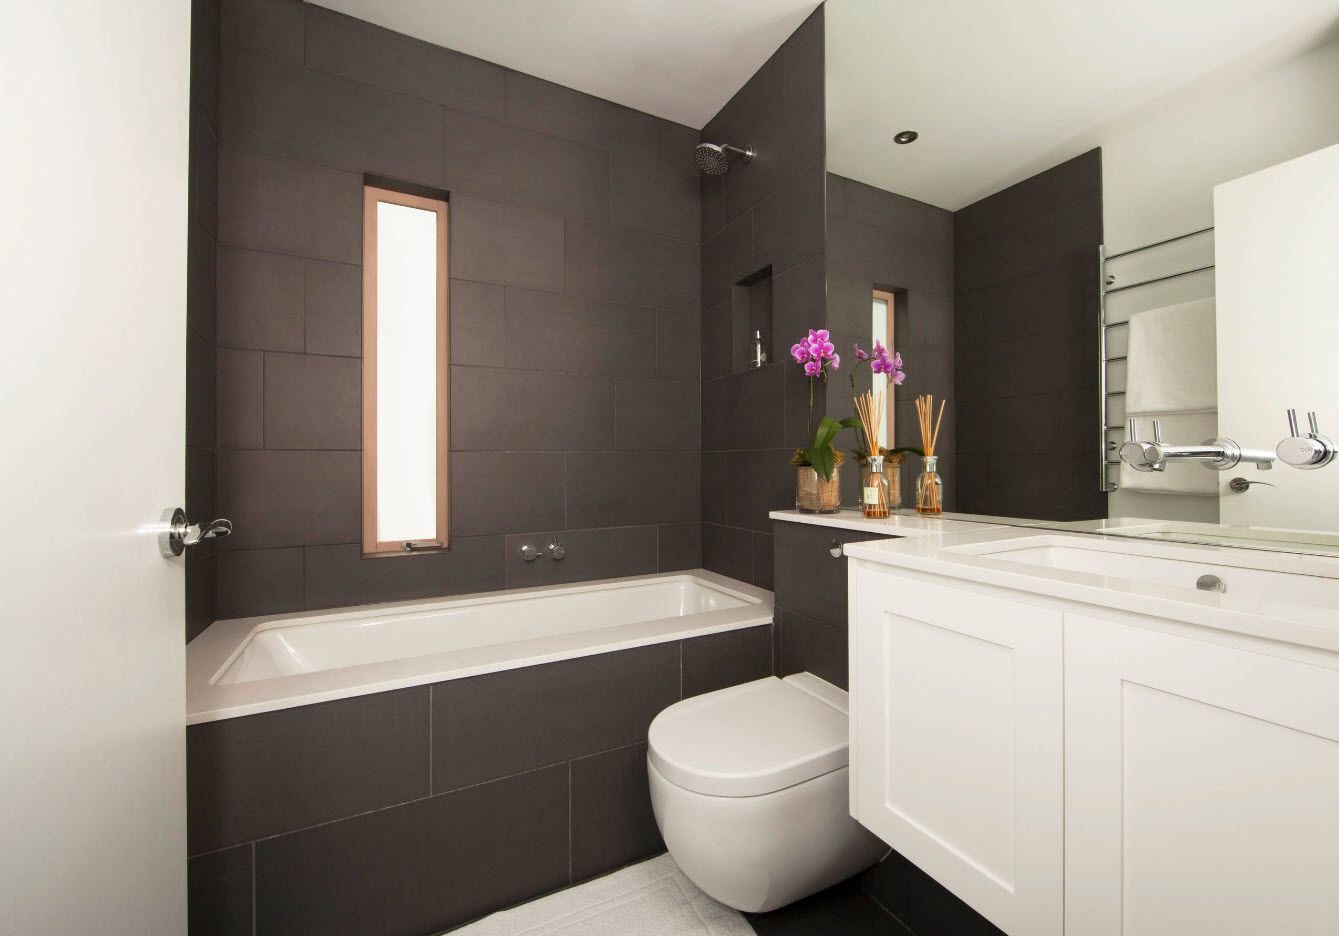 Bathroom design of dark gray palette